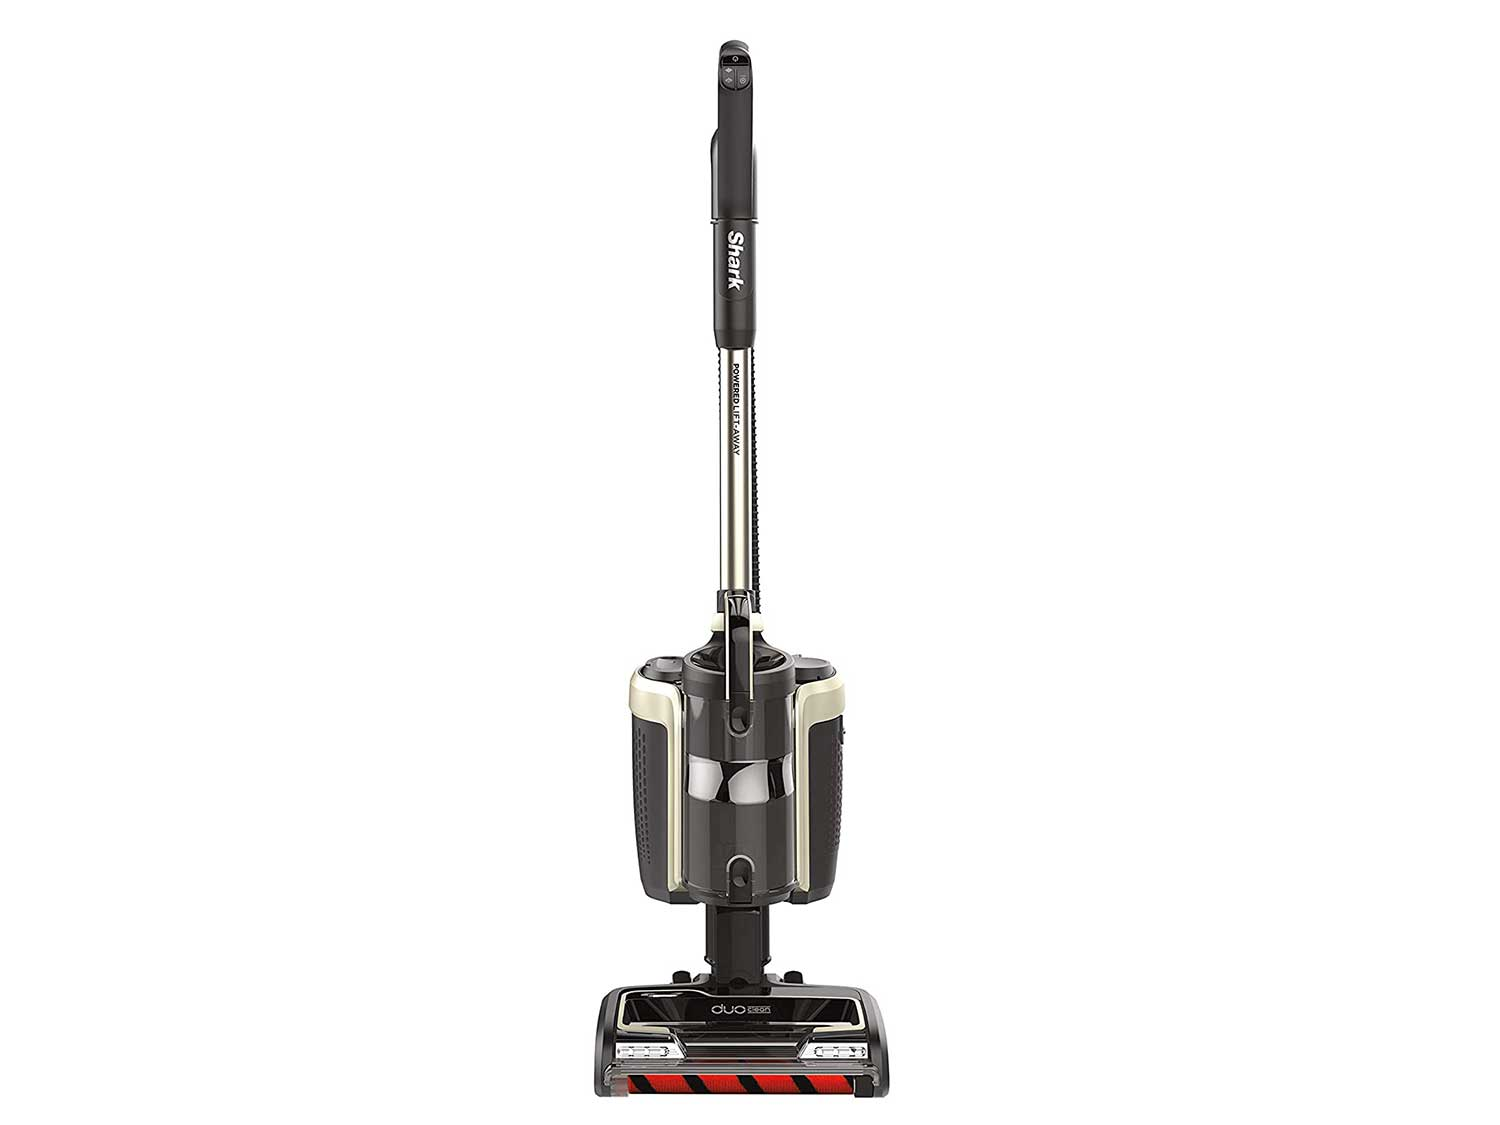 Shark ION P50 - IC162, Lightweight Cordless Upright Vacuum with HEPA Filter, Handheld Vacuum Mode, and DuoClean for Carpet and Hardfloor Cleaning